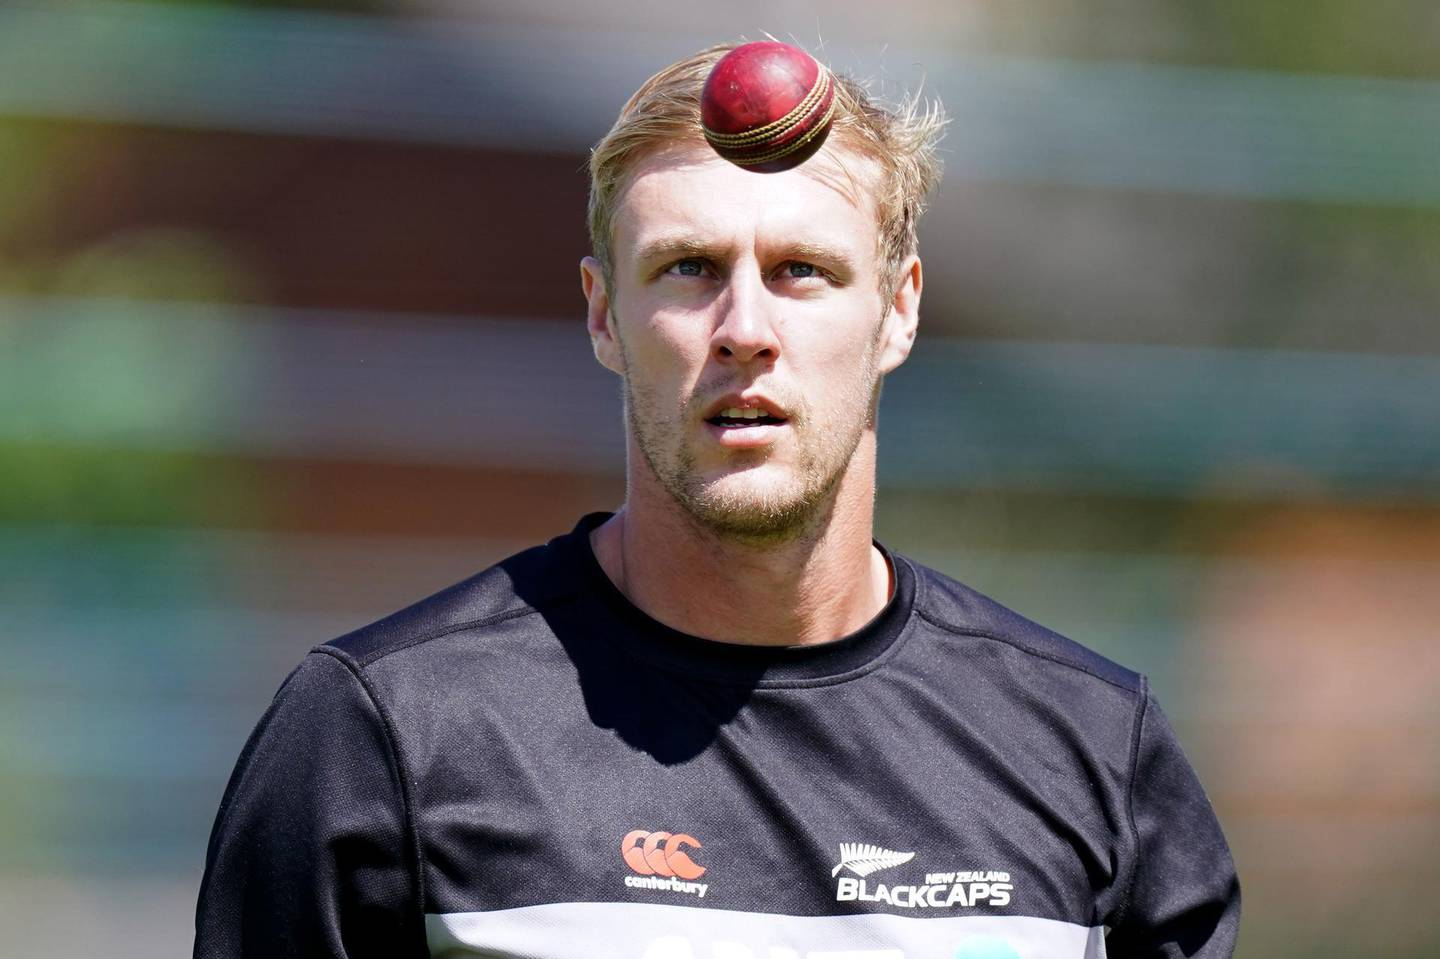 New Zealand's Kyle Jamieson during a nets session at Edgbaston, Birmingham. Picture date: Wednesday June 9, 2021. PA Photo. See PA story CRICKET England. Photo credit should read: Mike Egerton/PA Wire.RESTRICTIONS: Editorial use only. No commercial use without prior written consent of the ECB. Still image use only. No moving images to emulate broadcast. No removing or obscuring of sponsor logos